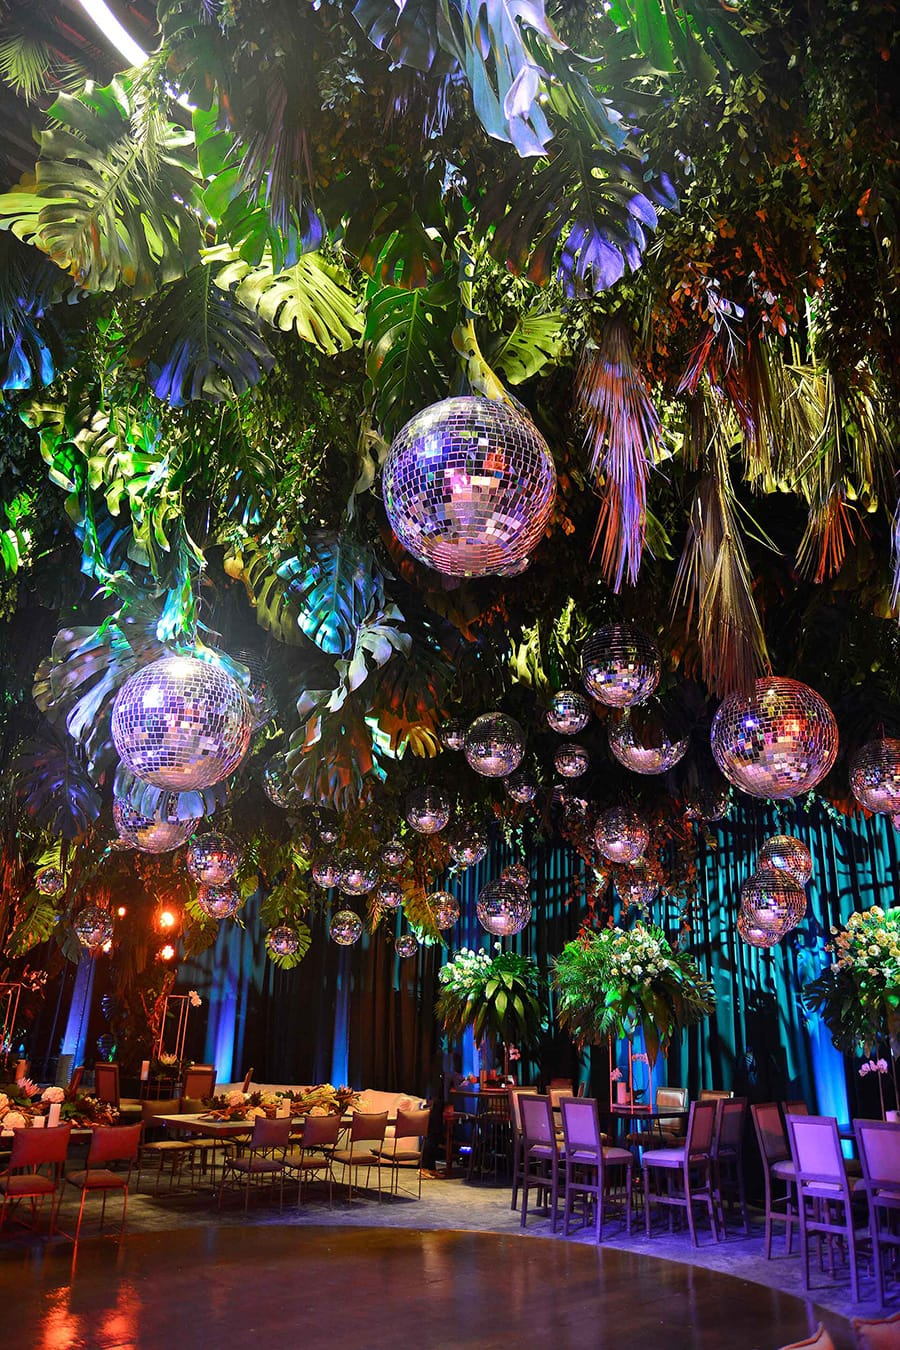 Electric Disco Wedding Ideas |  Modern greenery installation at a wedding reception suspended above the dance floor featuring tropical leaves, palm fronds and dozens of mirror balls of all different sizes | Photography: Ana Hinojosa & Sergio Sandona via Brides